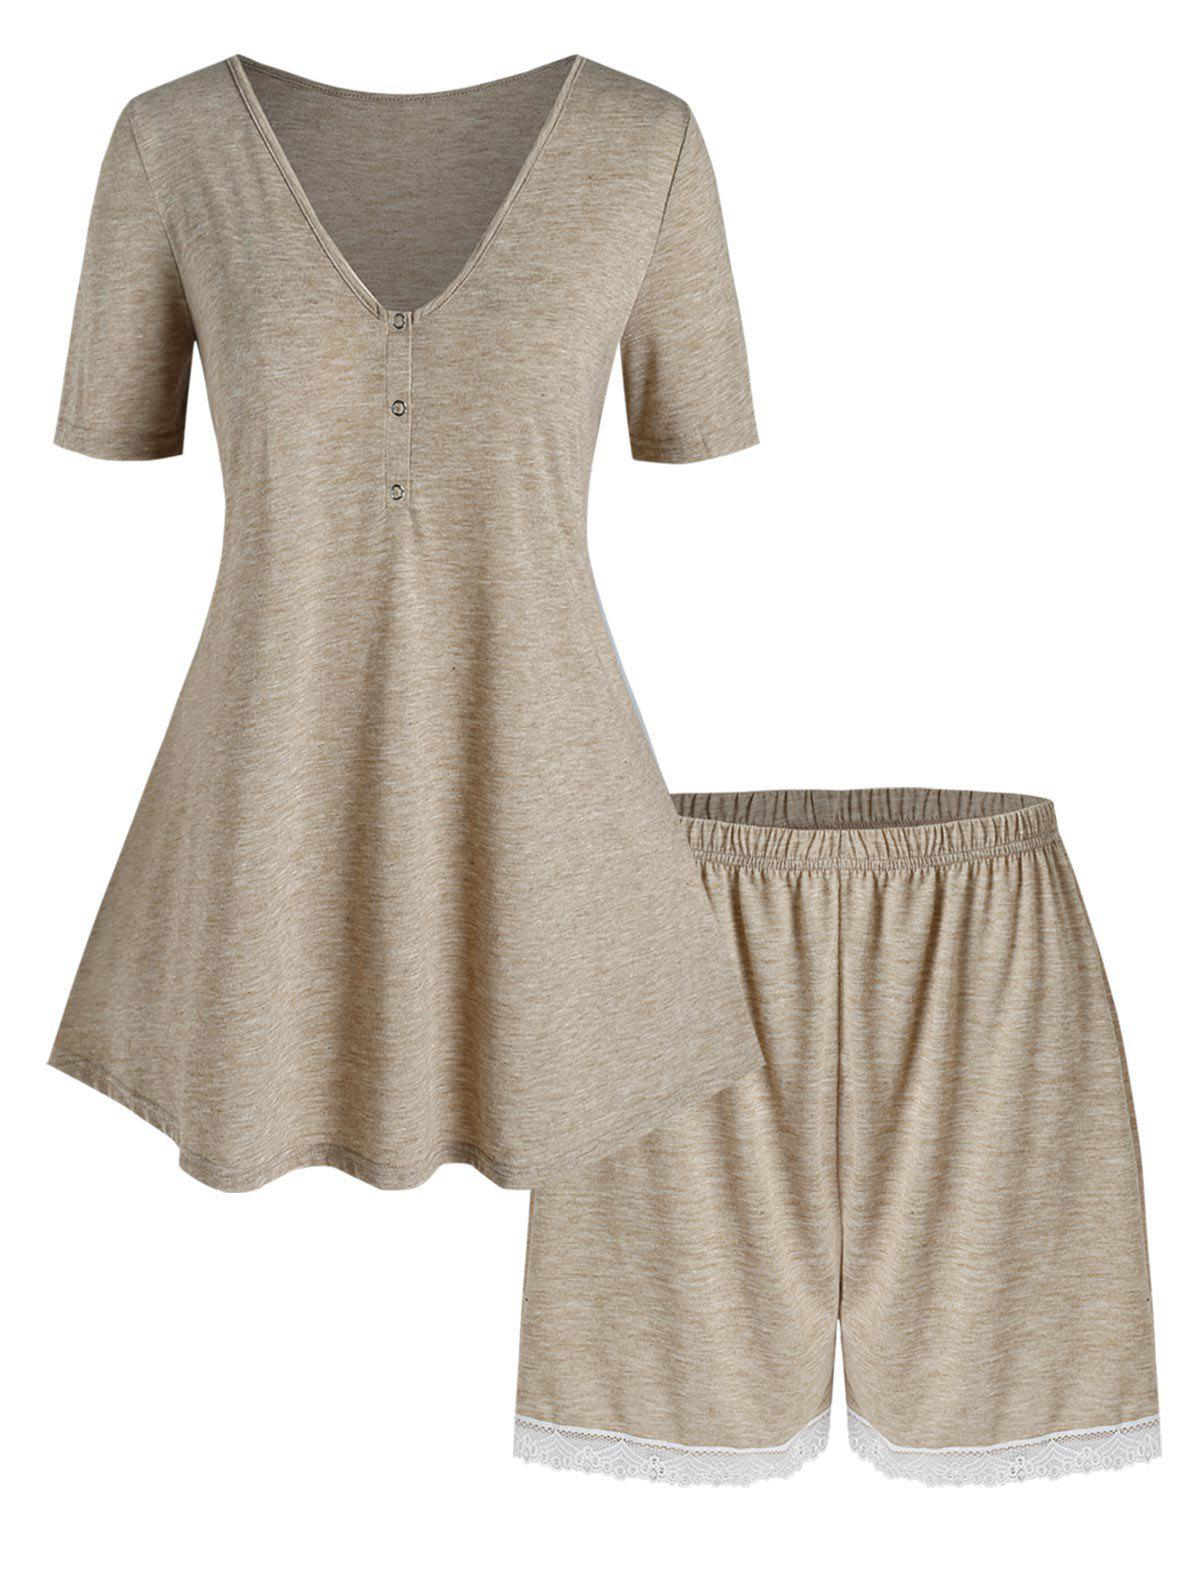 Plus Size V Neck Henley Tee and Shorts Pajamas Set - TAN 1X